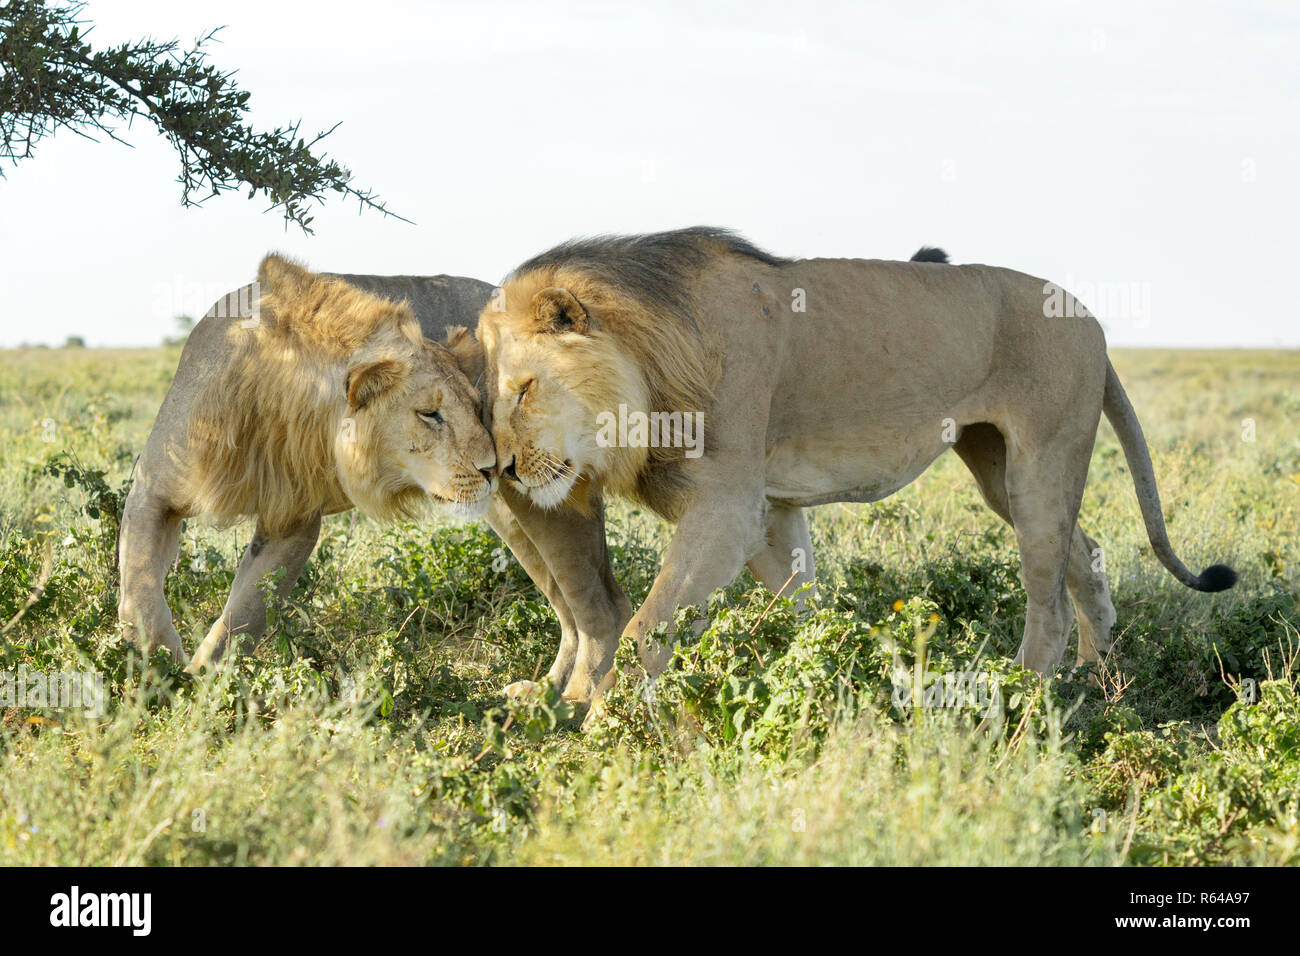 Two male lion (Panthera leo) brothers showing affection, together on savanna, Ngorongoro conservation area, Tanzania. - Stock Image